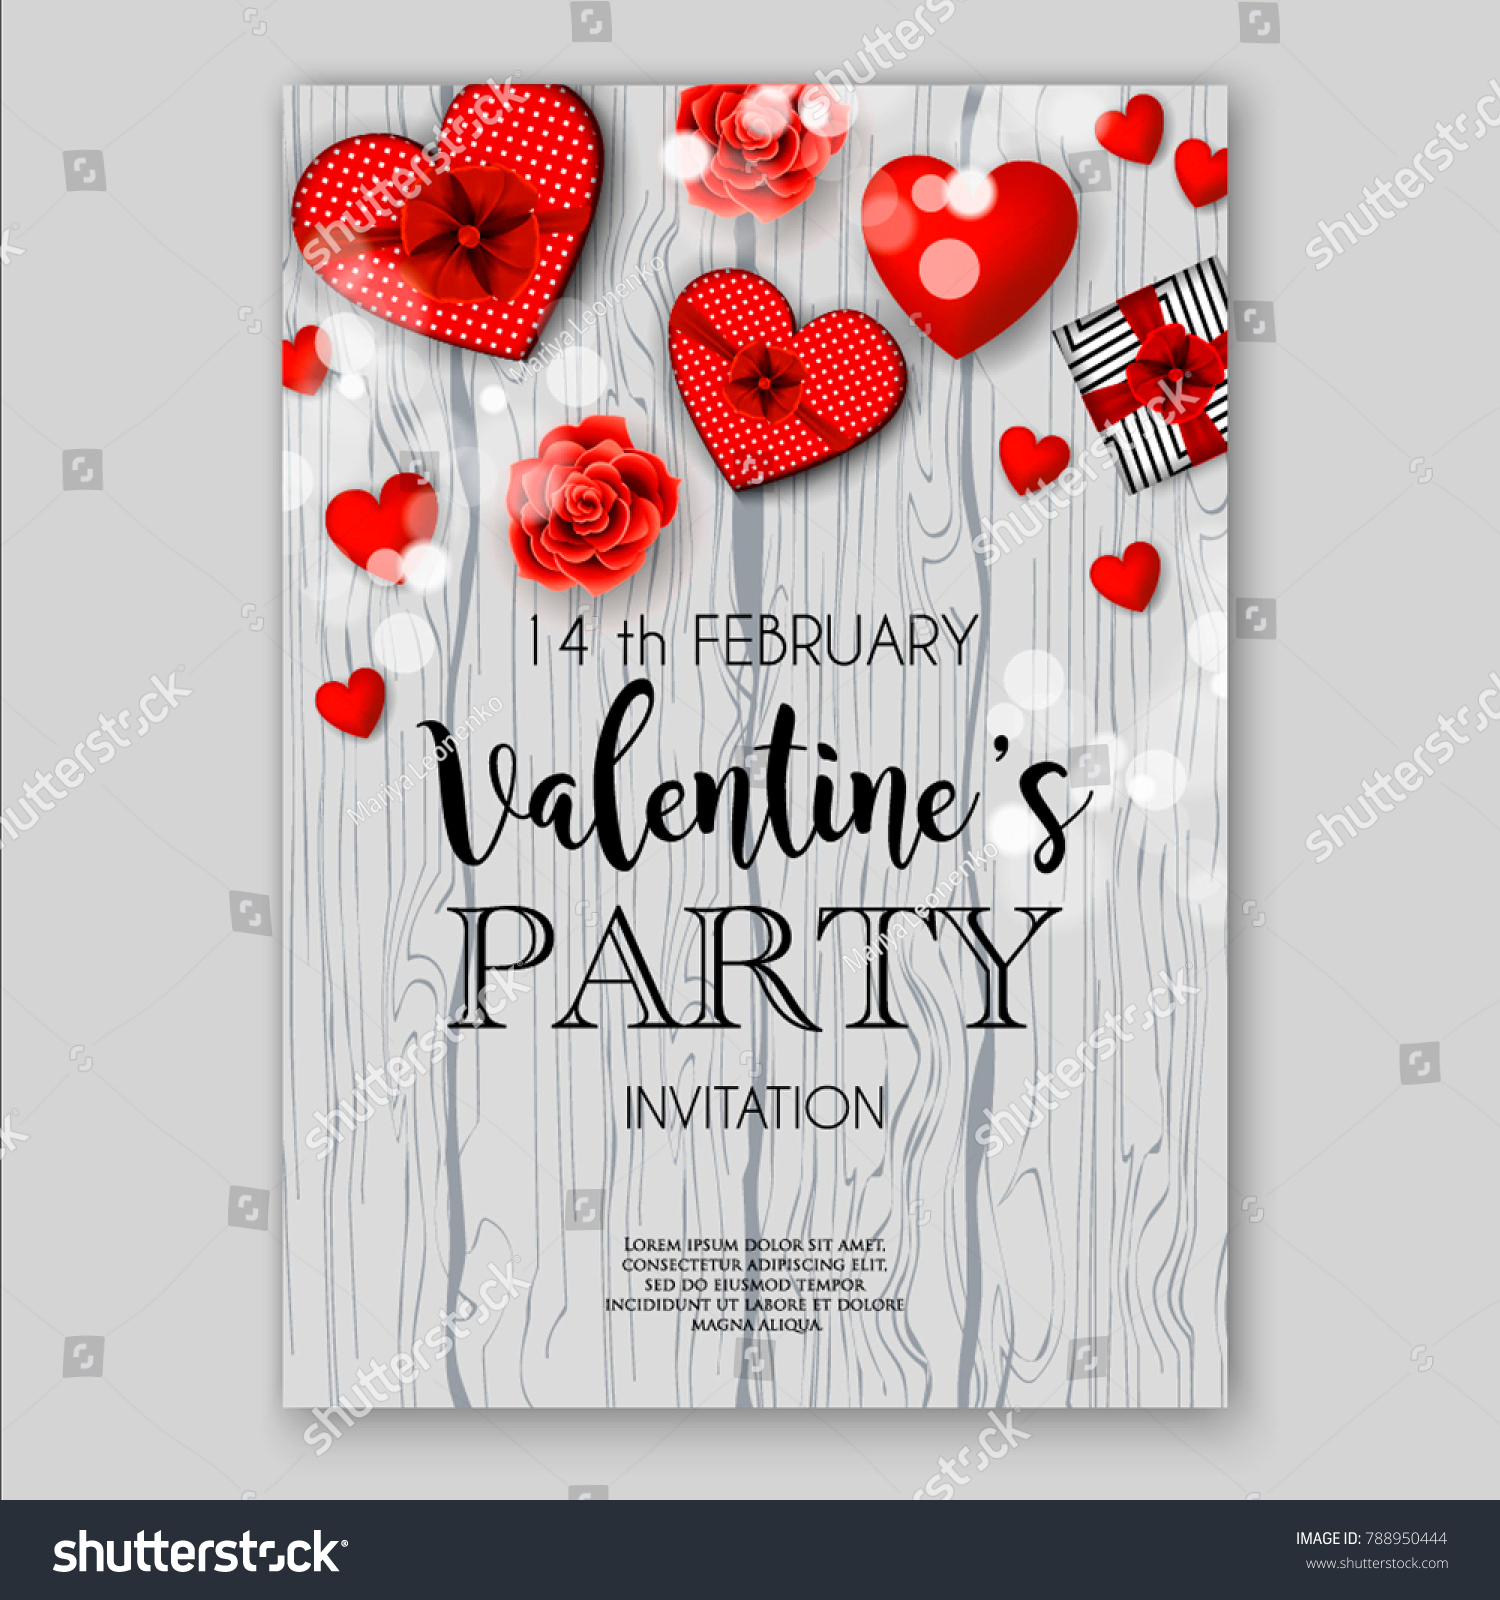 Valentines Day Party Invitation Heart Wedding Stock Vector 788950444 ...